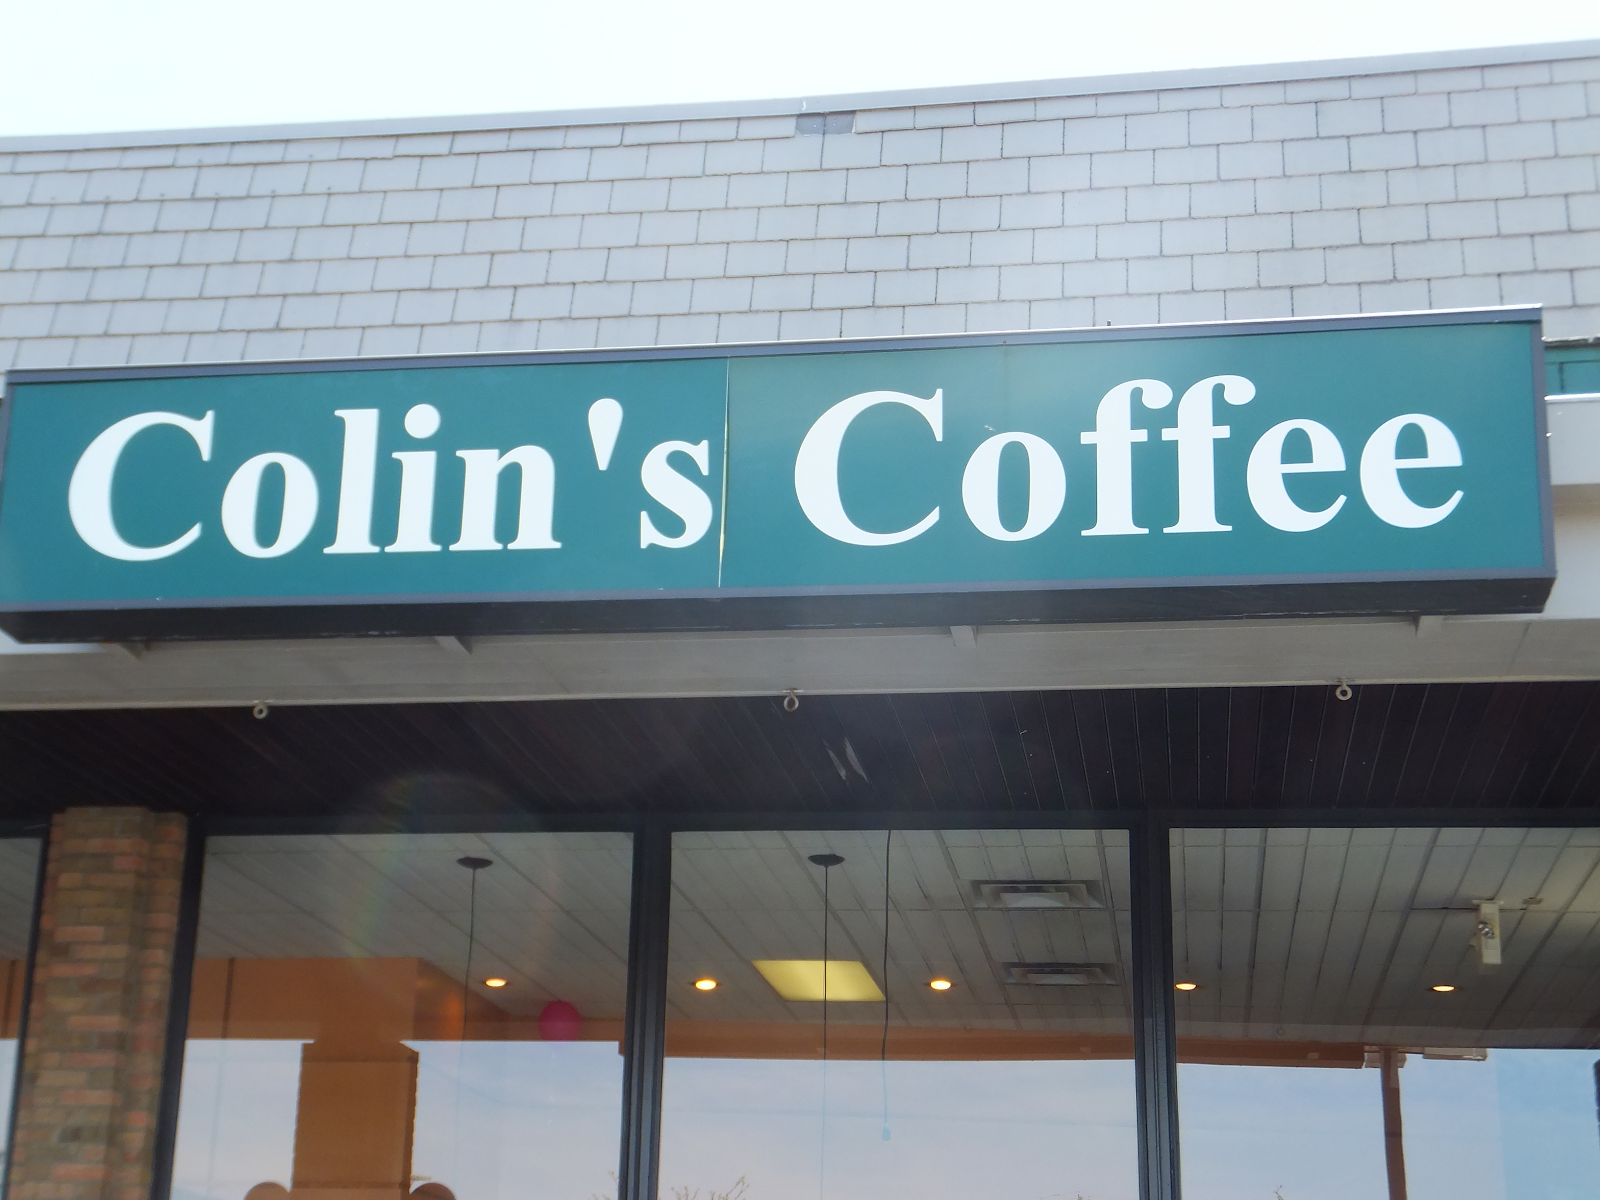 blue Colin's Coffee sign on building